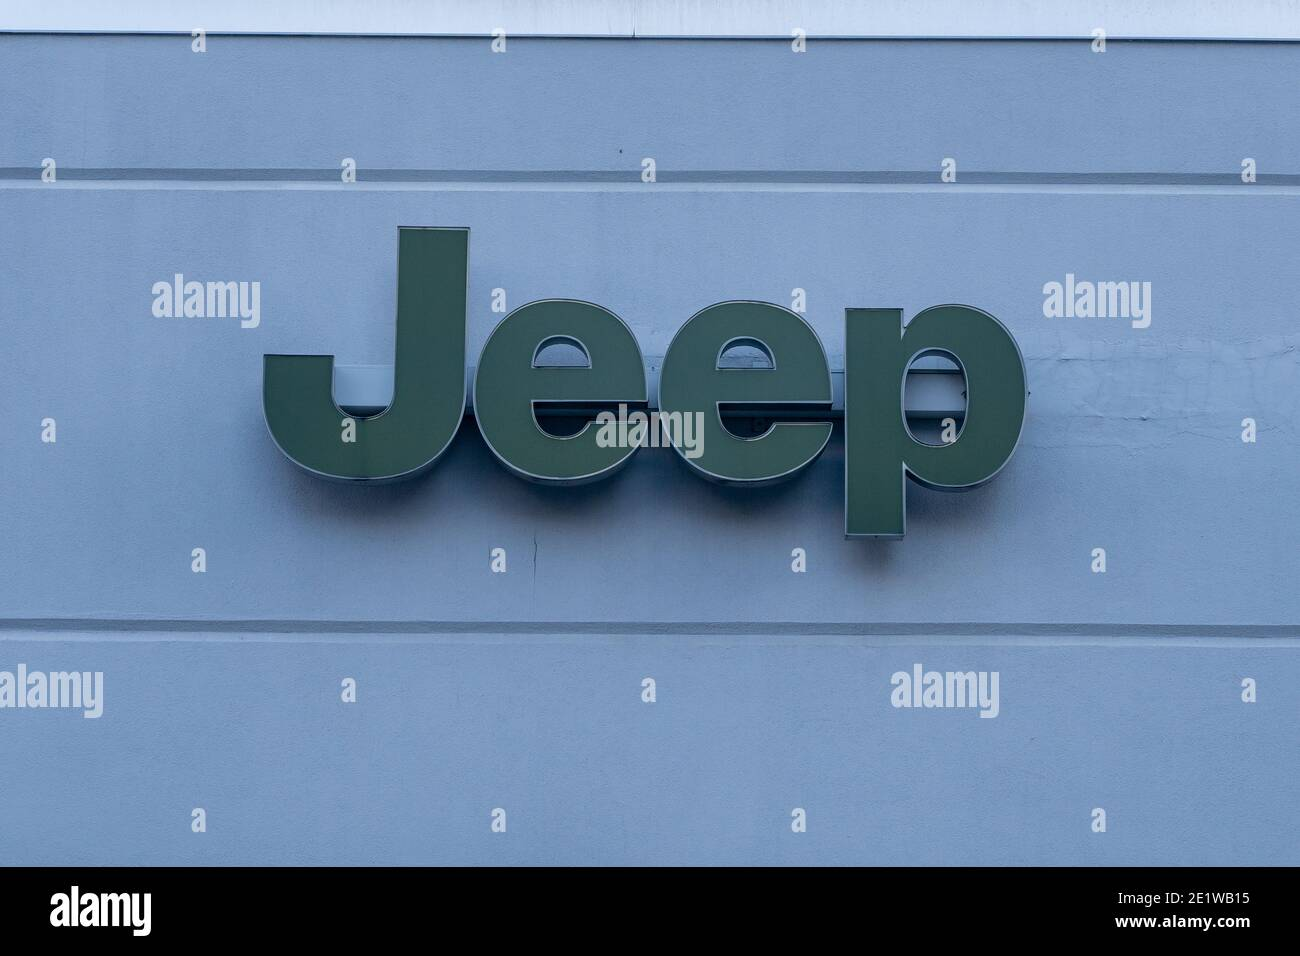 NEW YORK, NY – JANUARY 07, 2021: Jeep logo seen at a dealership on Manhattan's Upper West Side. Stock Photo